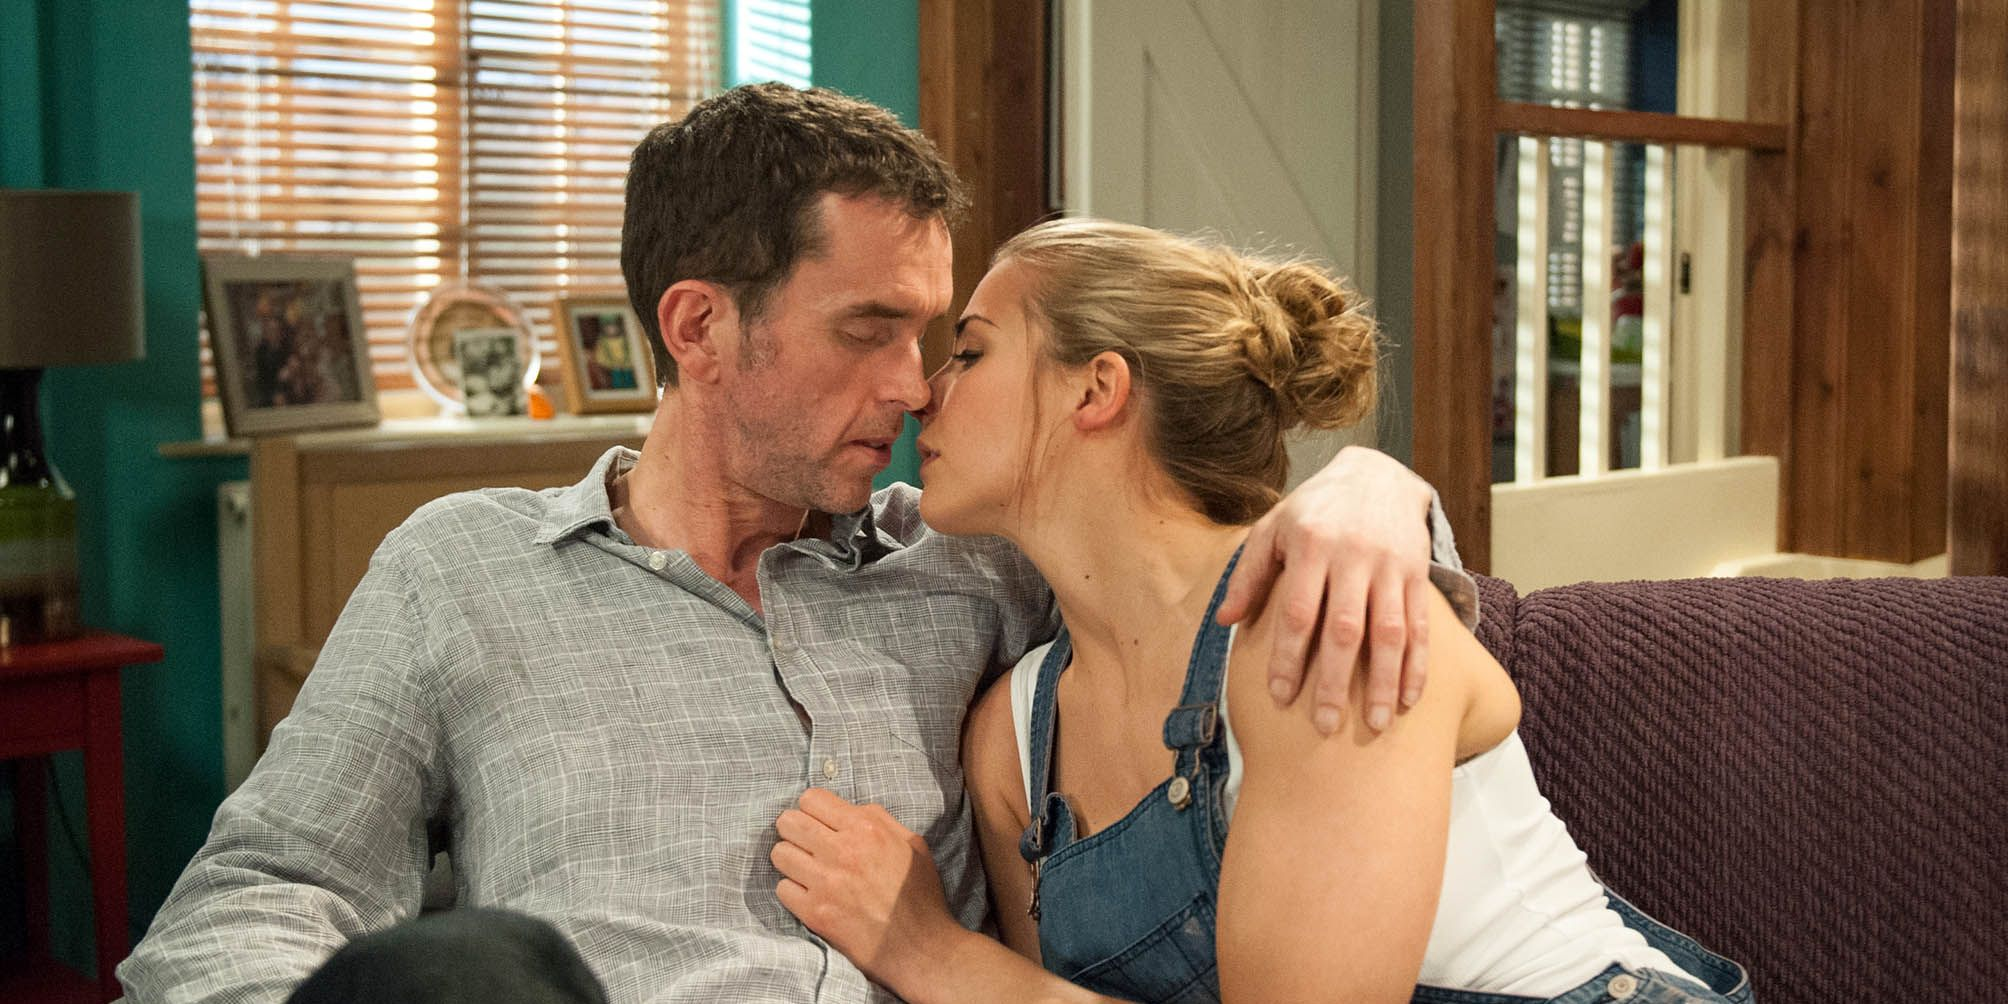 Sparks fly between Carly Hope and Marlon Dingle in Emmerdale